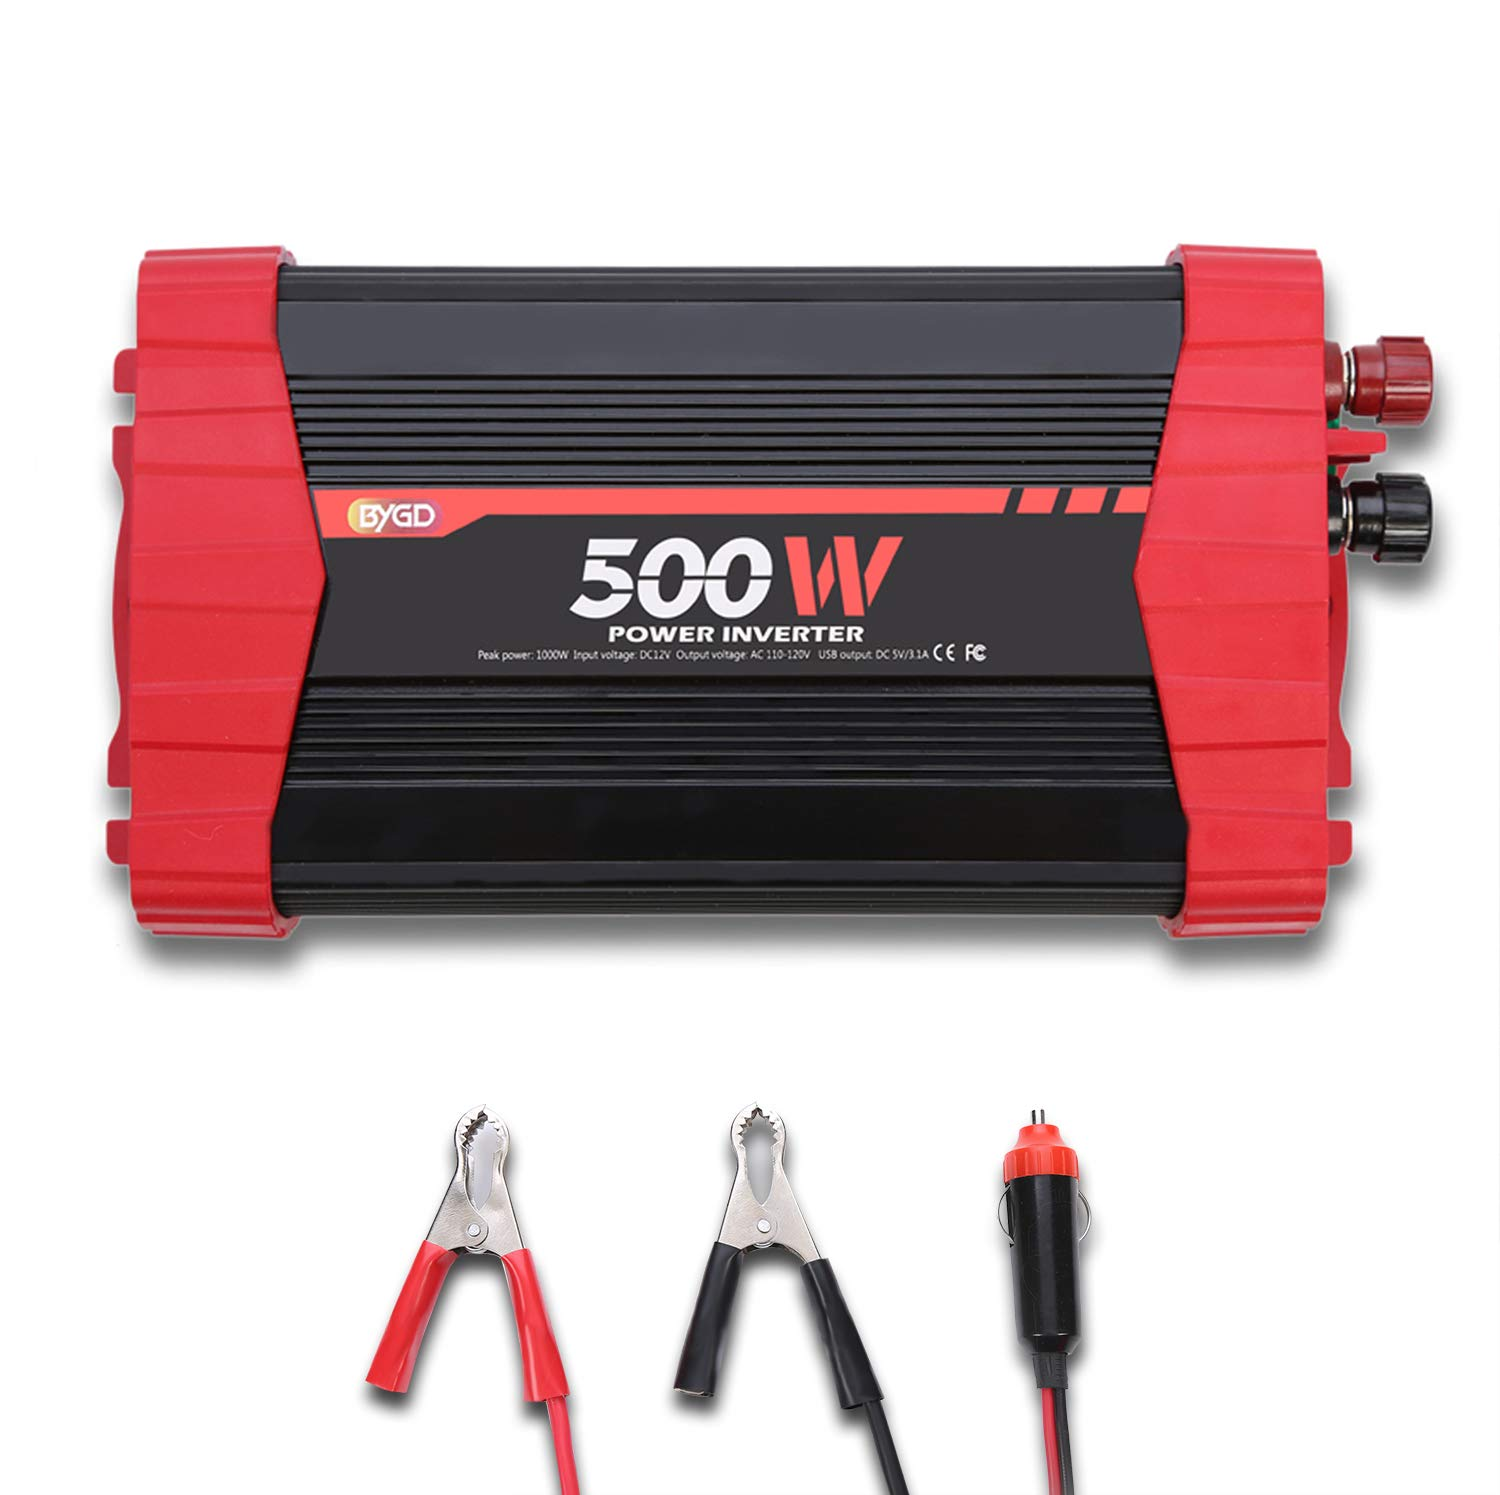 BYGD 500W Car Power Inverter DC 12V to 110V AC Converter Dual Outlets with 3.1A 4 USB Ports Car Charger Adapter by BYGD